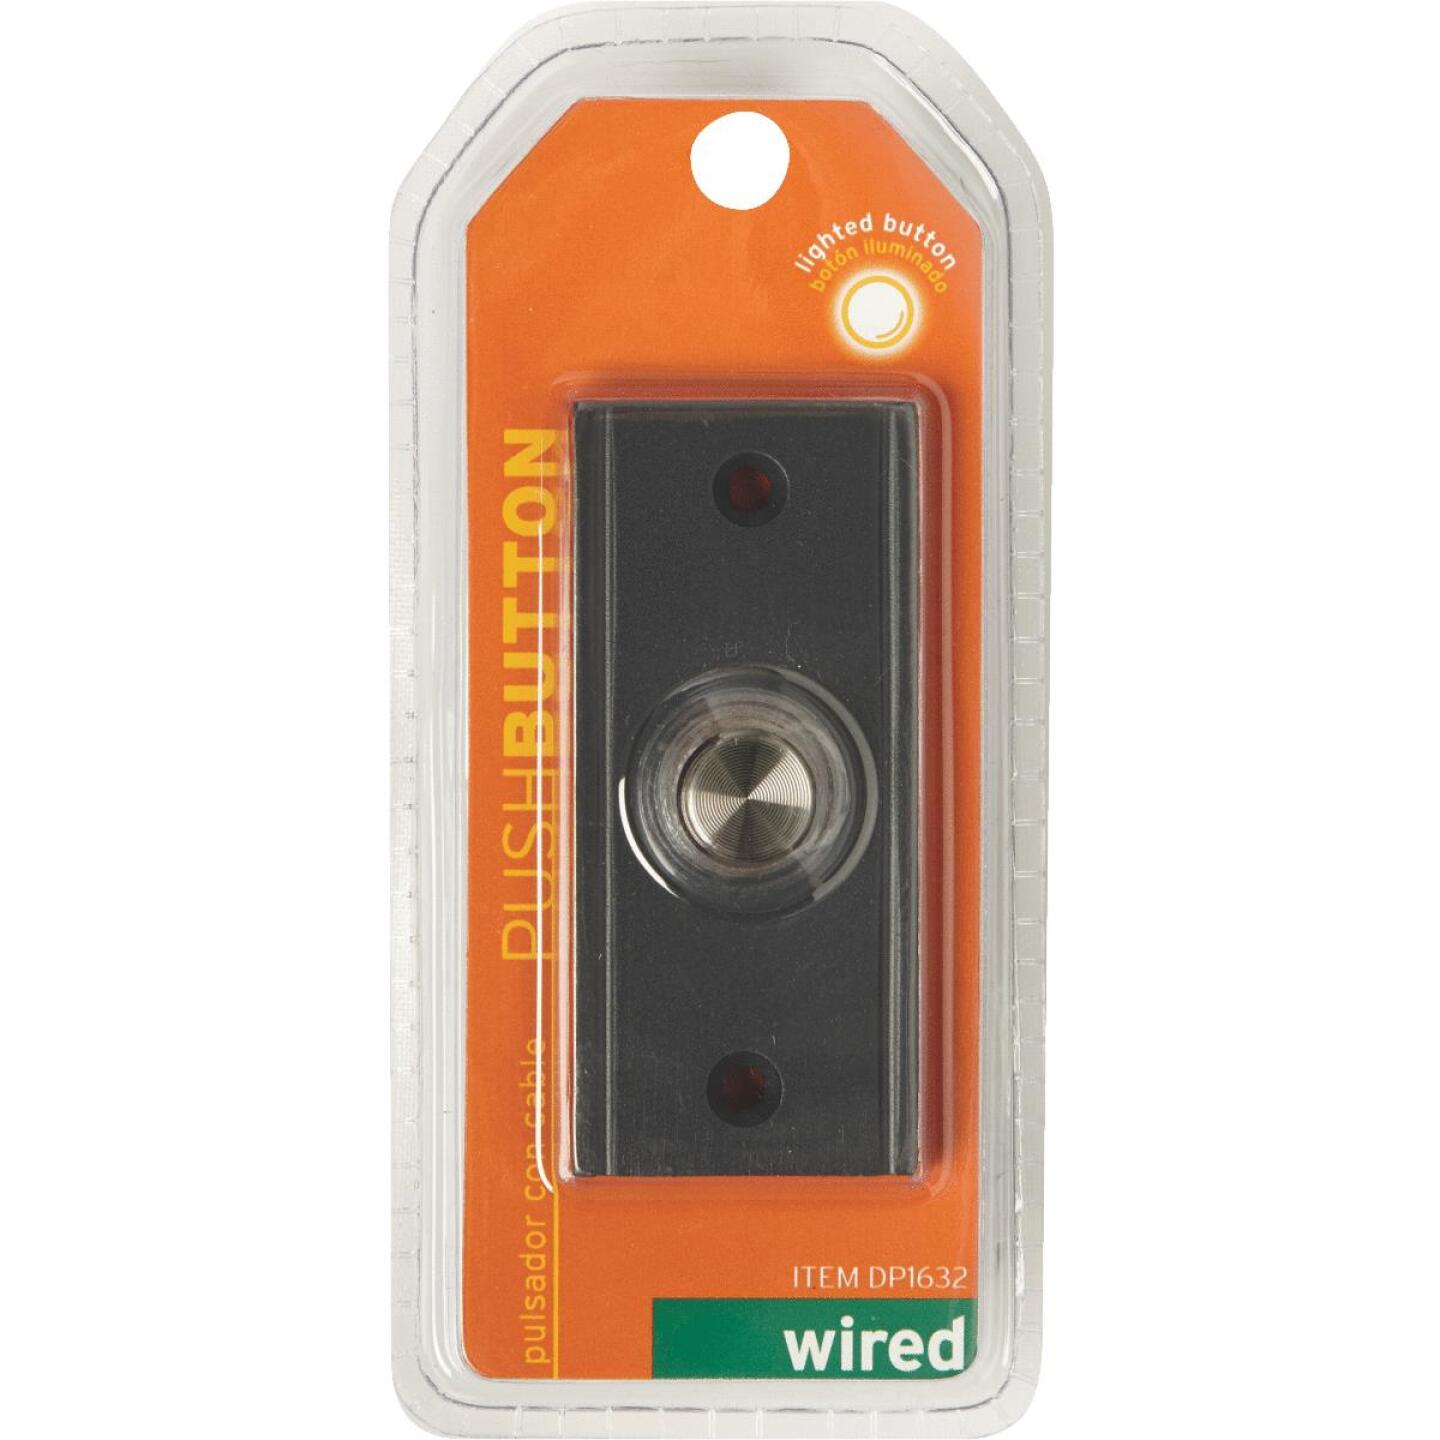 IQ America Wired Oil Rubbed Bronze Brass Lighted Doorbell Push-Button Image 2